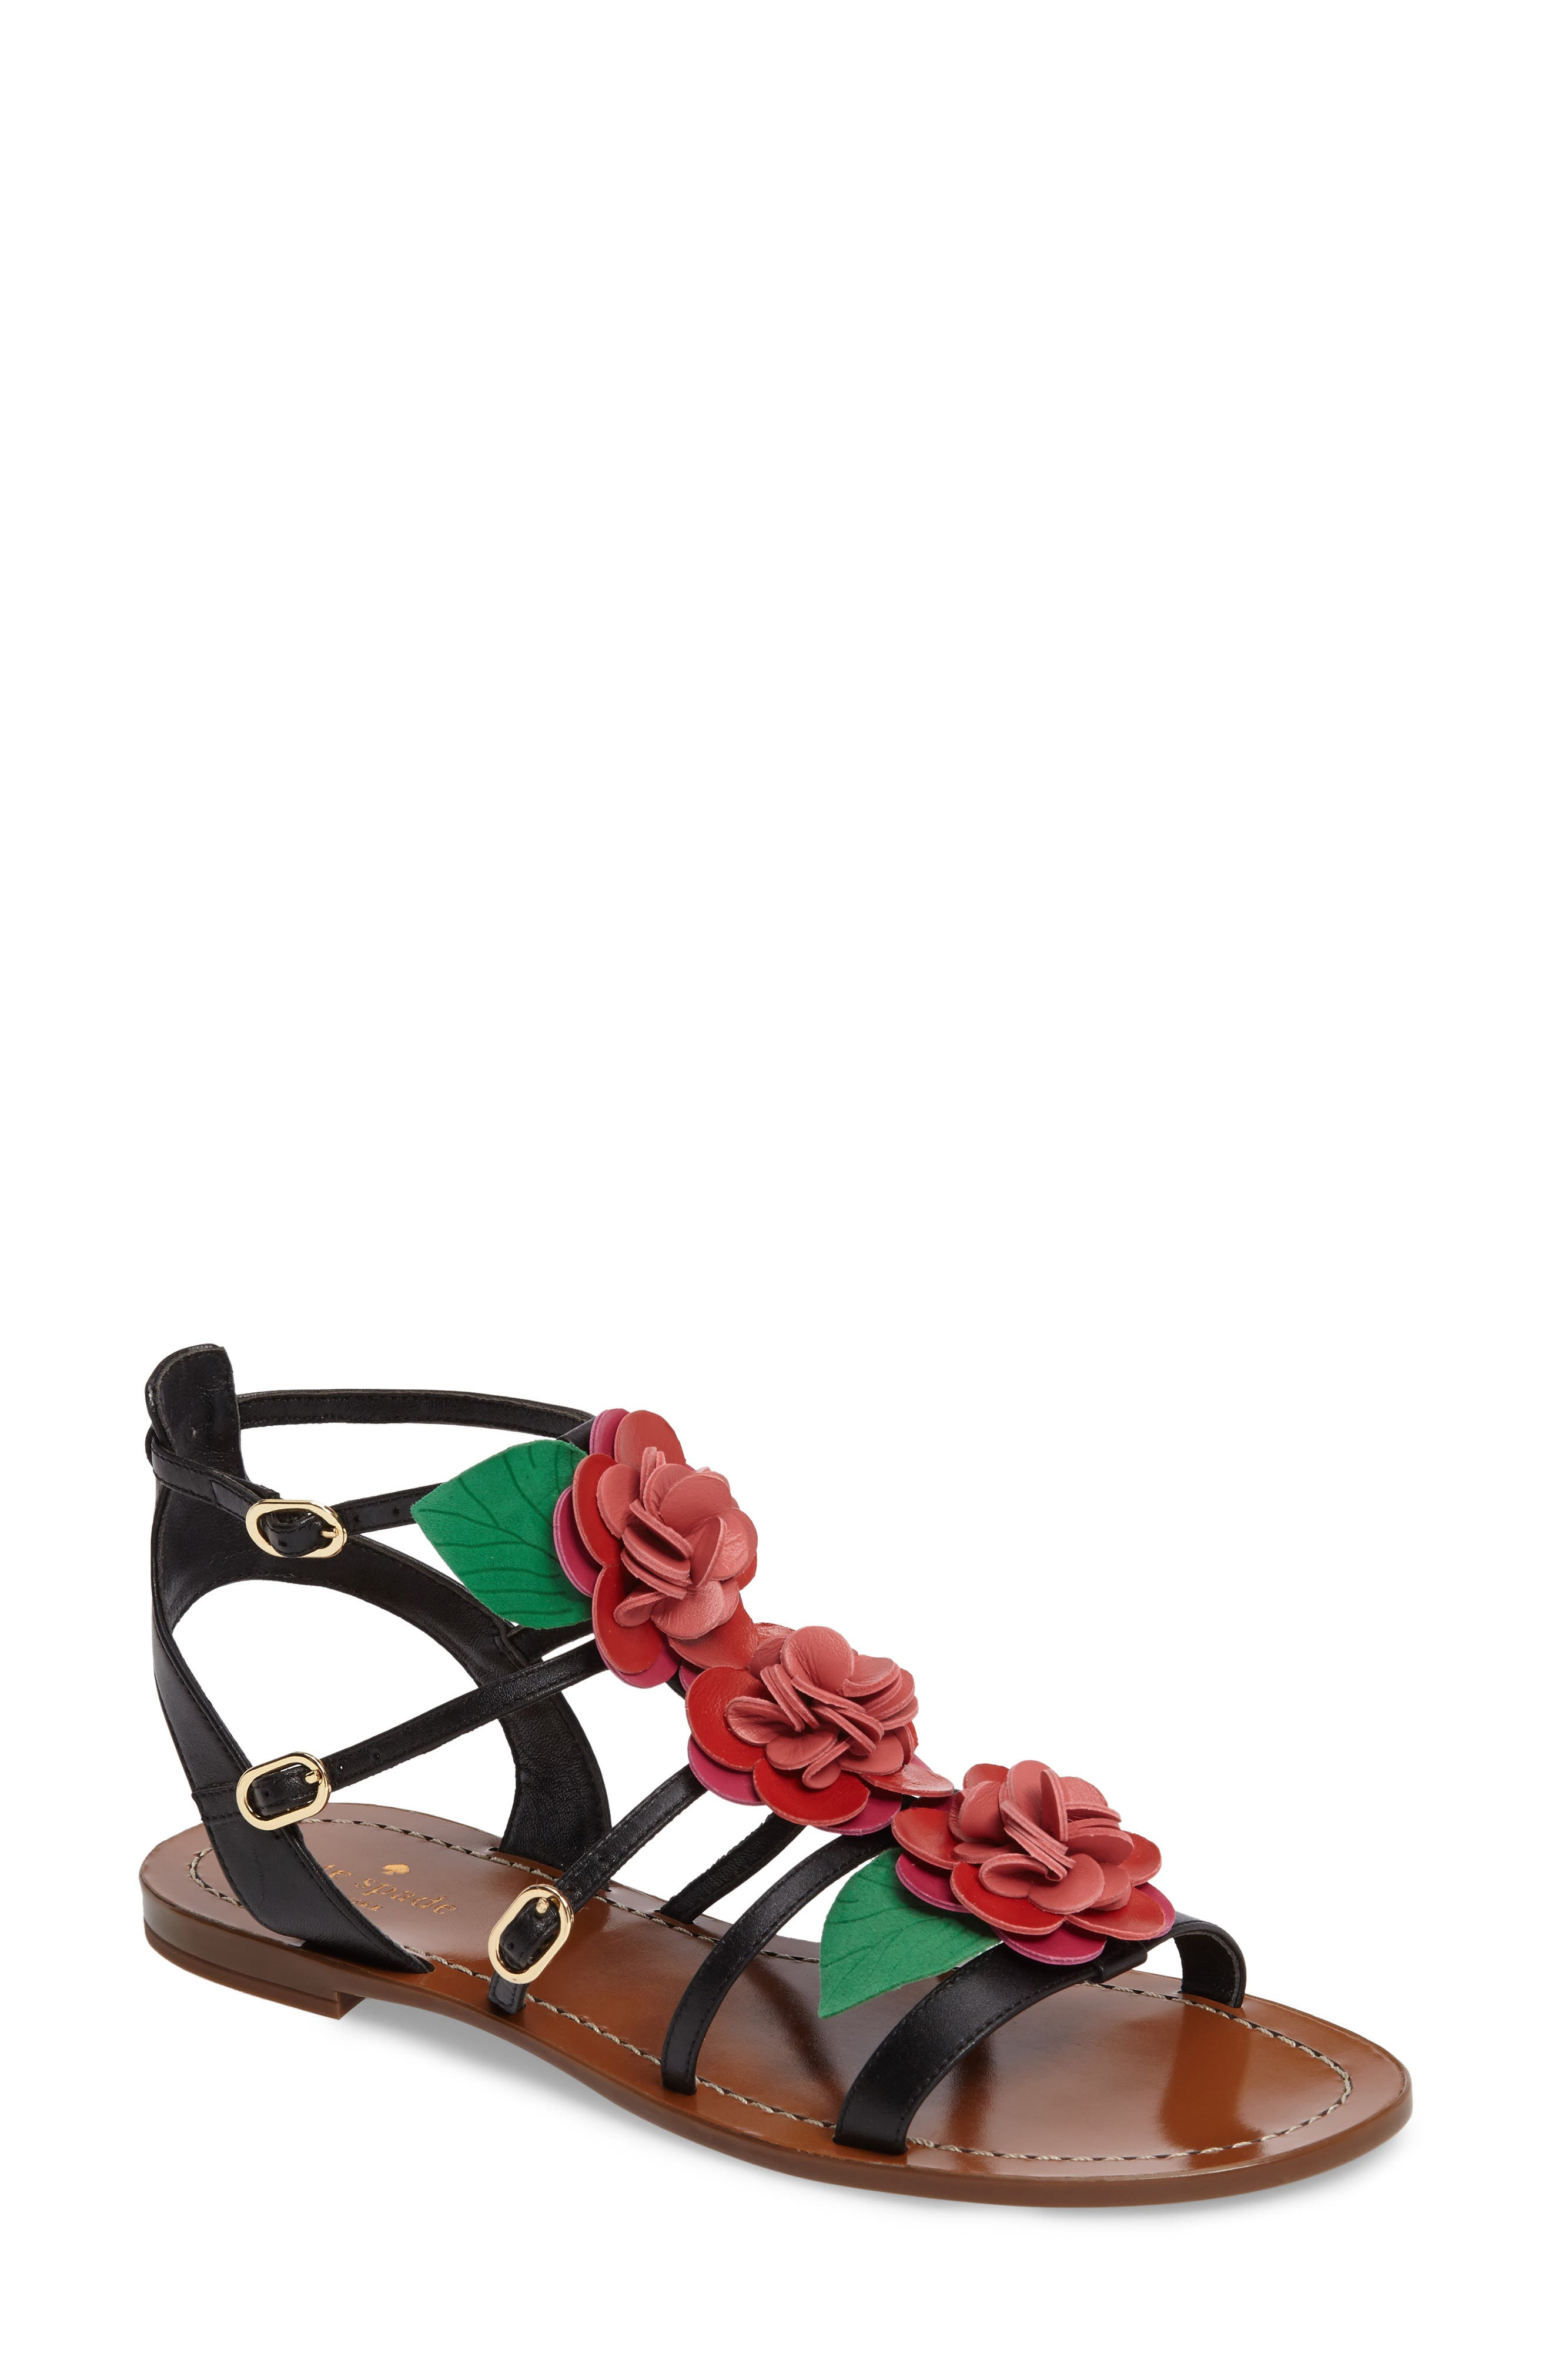 kate spade new york columbus flat sandal (Women)